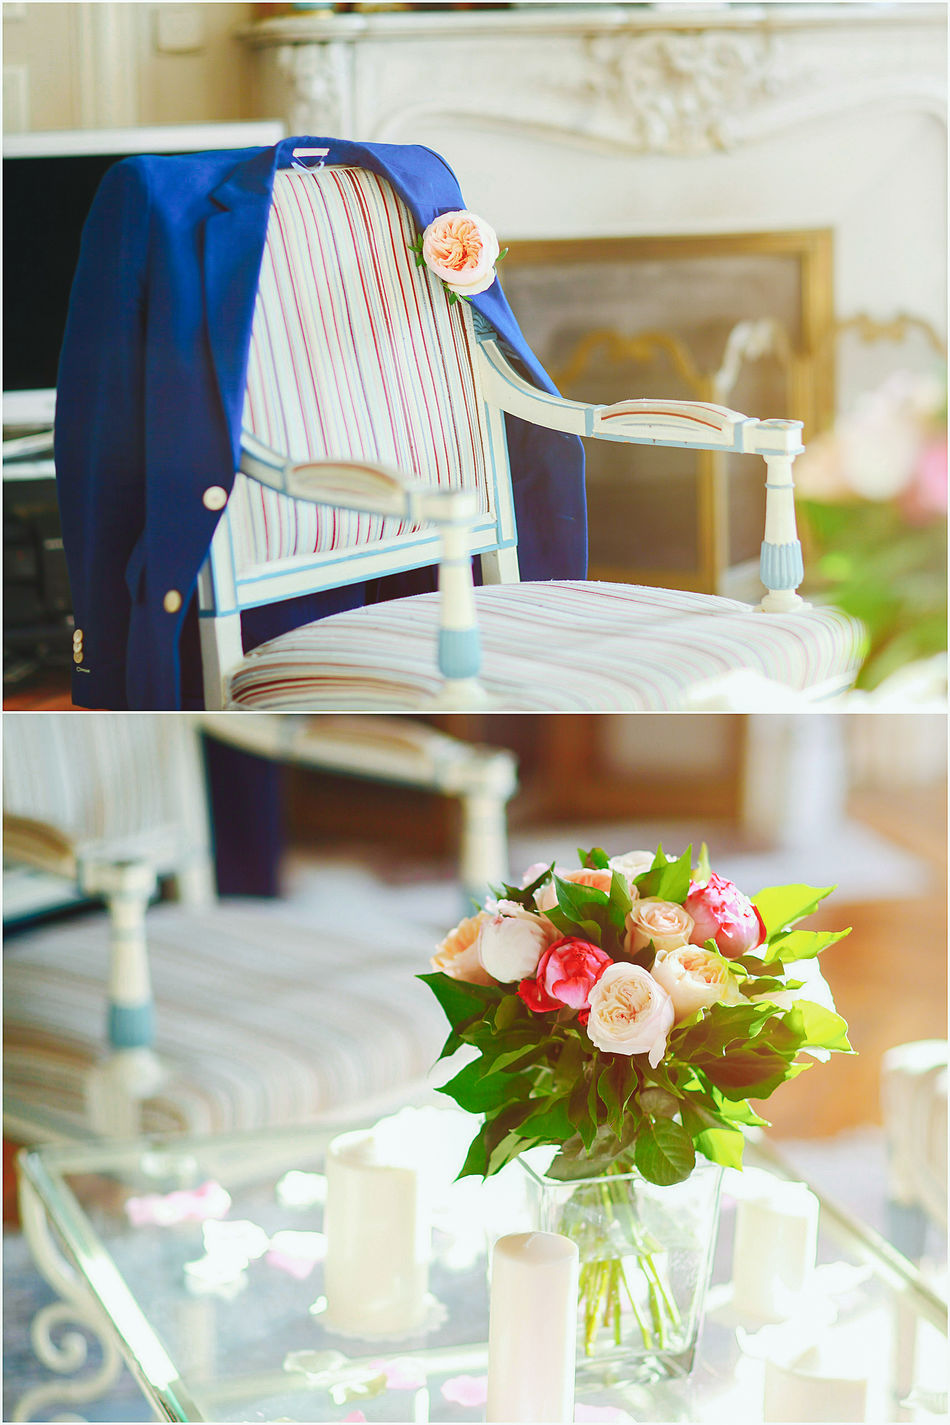 Bouquet Chair Chair Cute Decorations Details Flower France French Indoors  Indoors  Morning Paris Preparations Table Tender Wedding Wedding Wedding Day Wedding Photography Wedding Reception